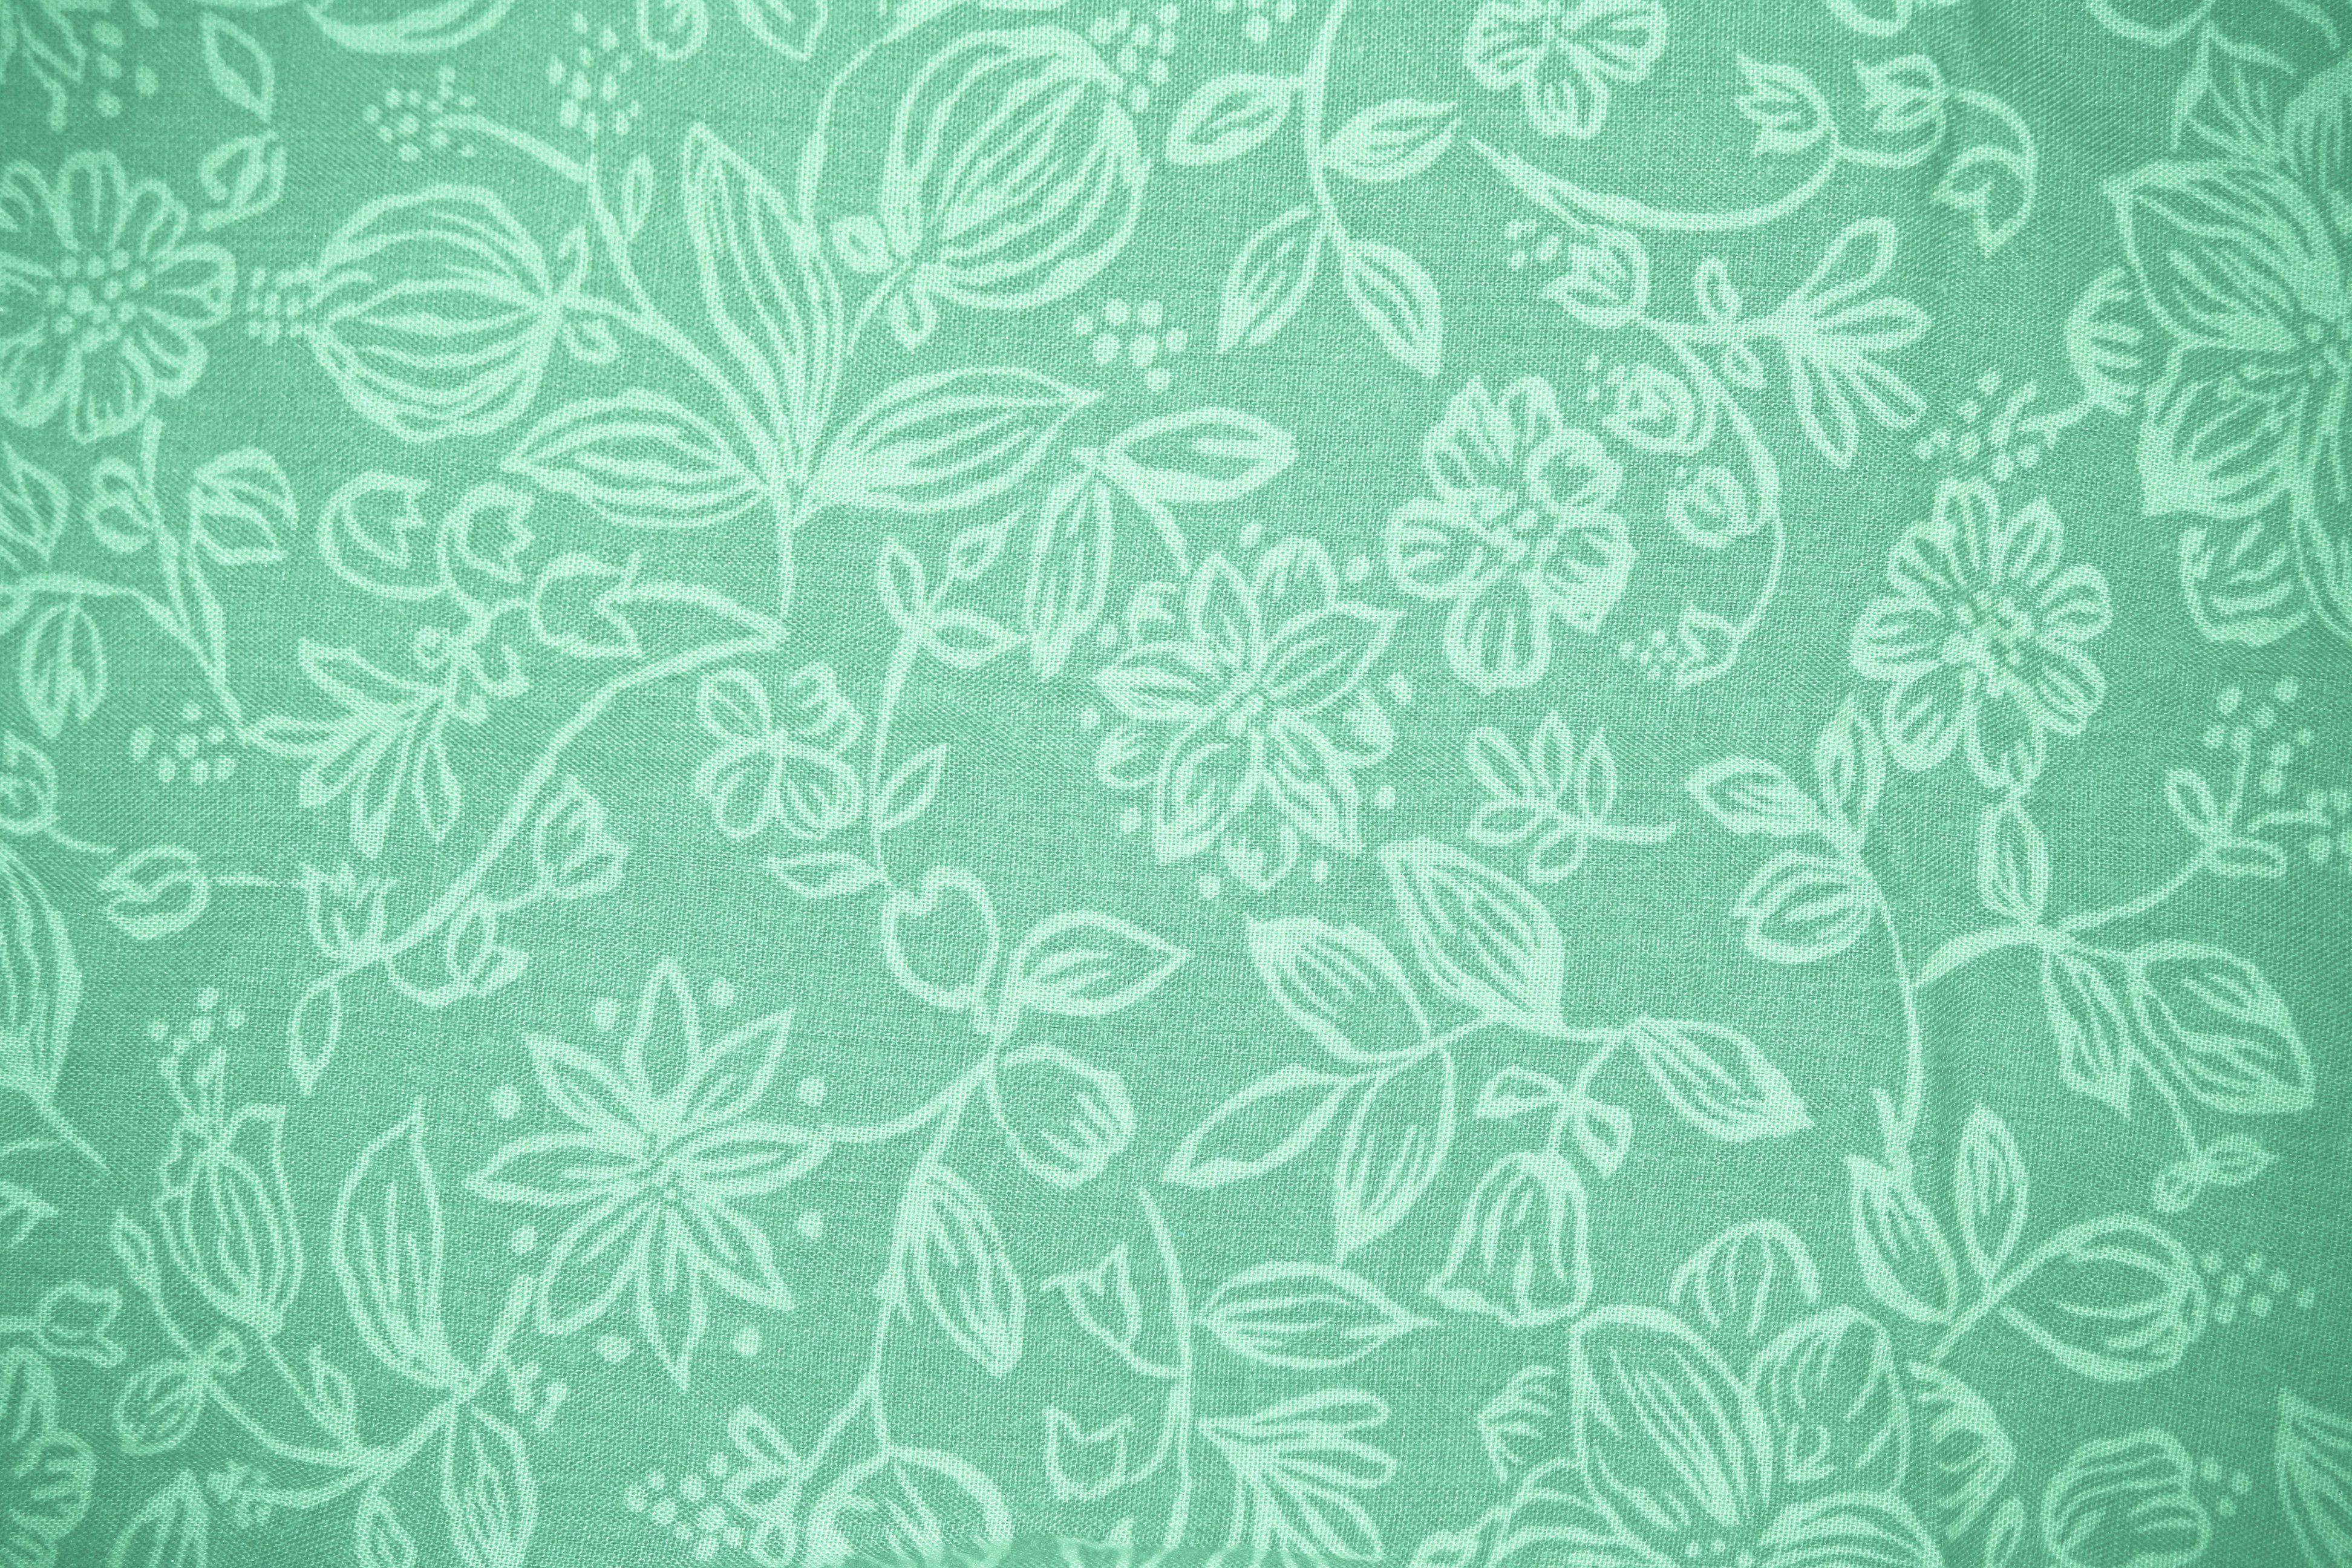 Mint Green Aesthetic Wallpaper For Laptop Mint Green Desktop Wallpapers Top Free Mint Green Desktop Backgrounds Wallpaperaccess mint green desktop wallpapers top